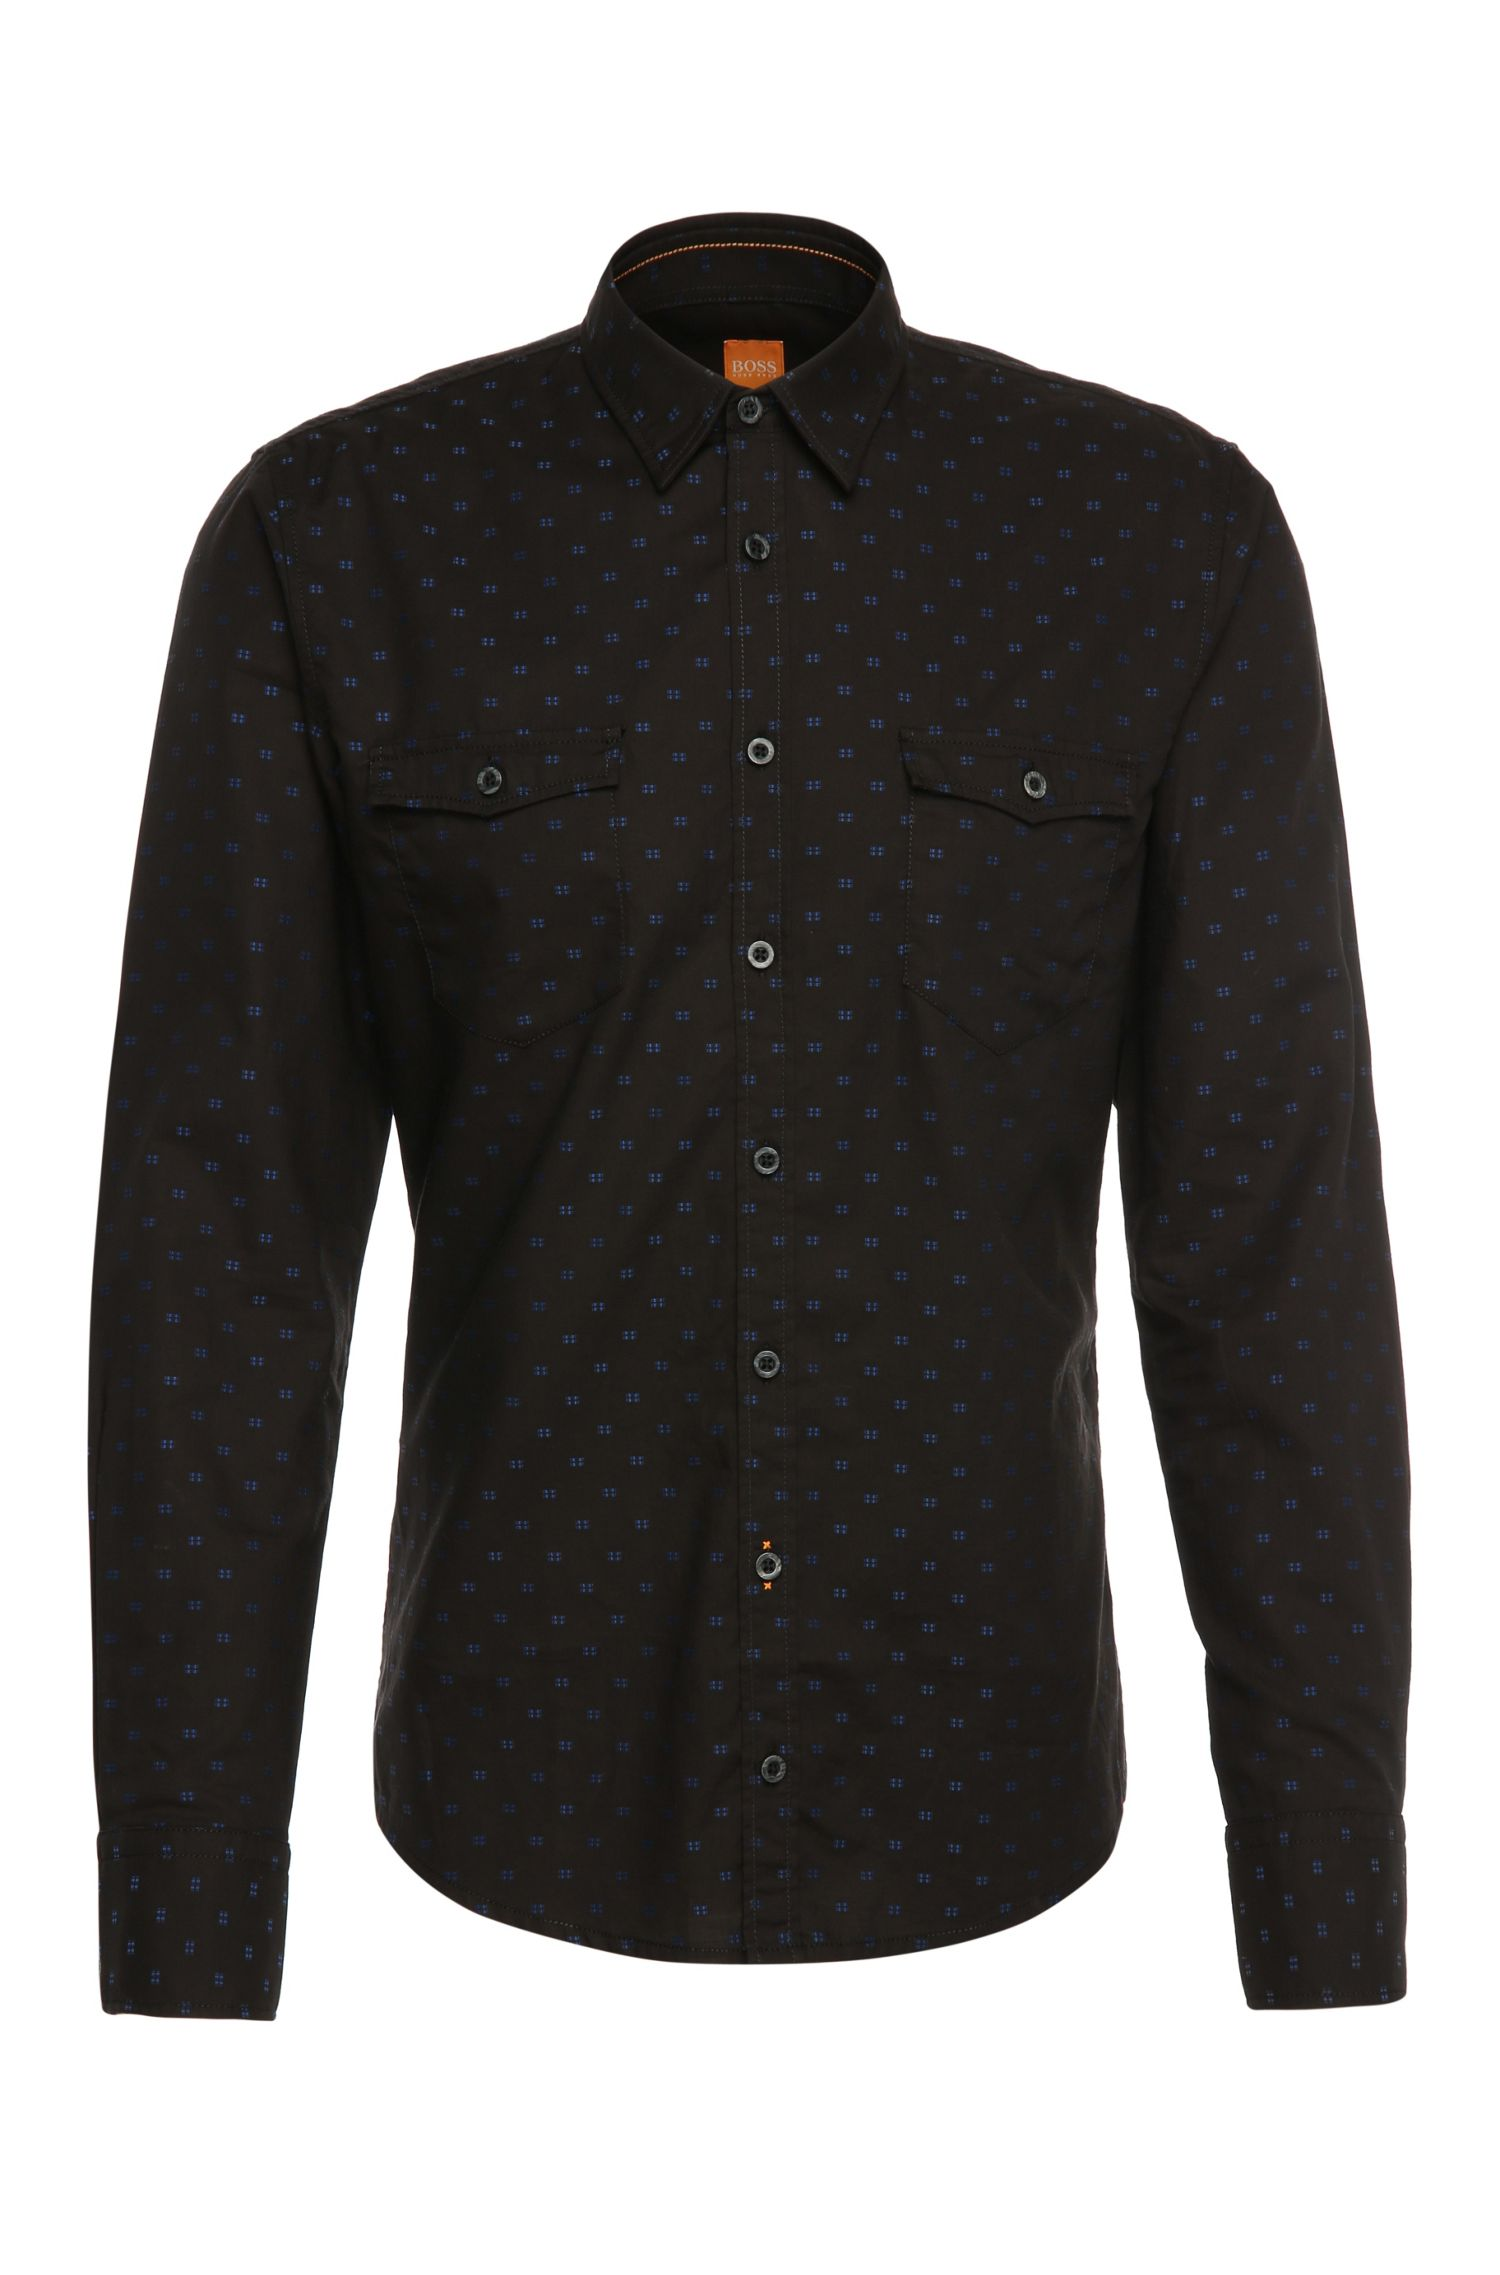 'EdoslimE' | Slim Fit, Cotton Button Down Shirt